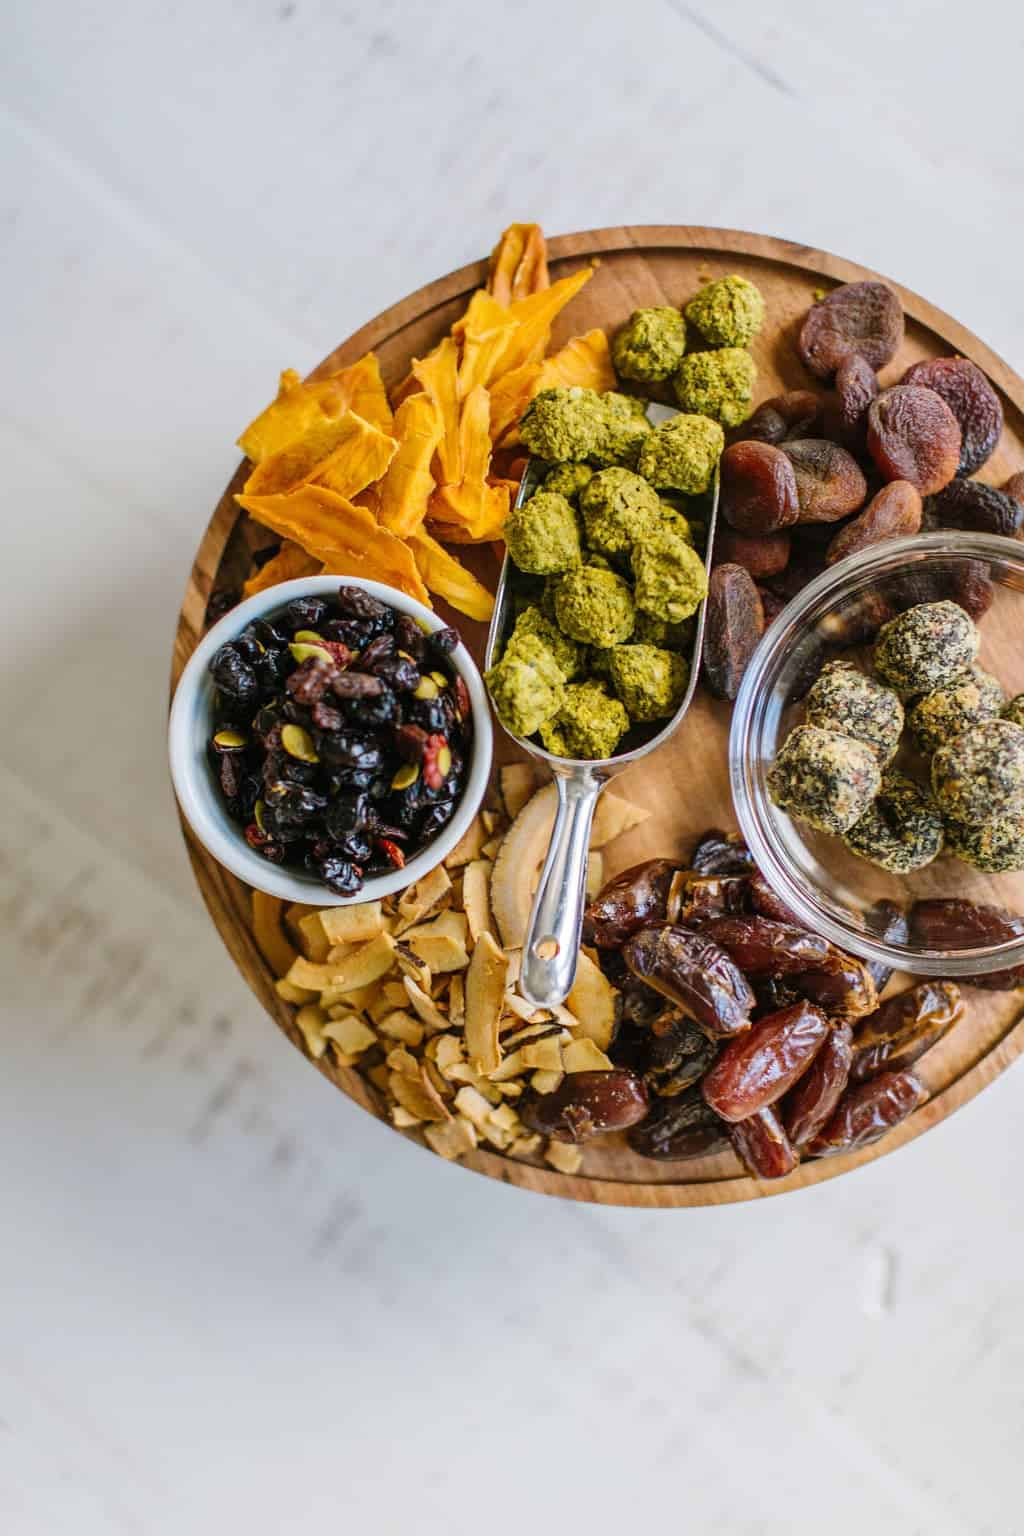 Round wood board with dried fruit, coconut chips and healthy snacks